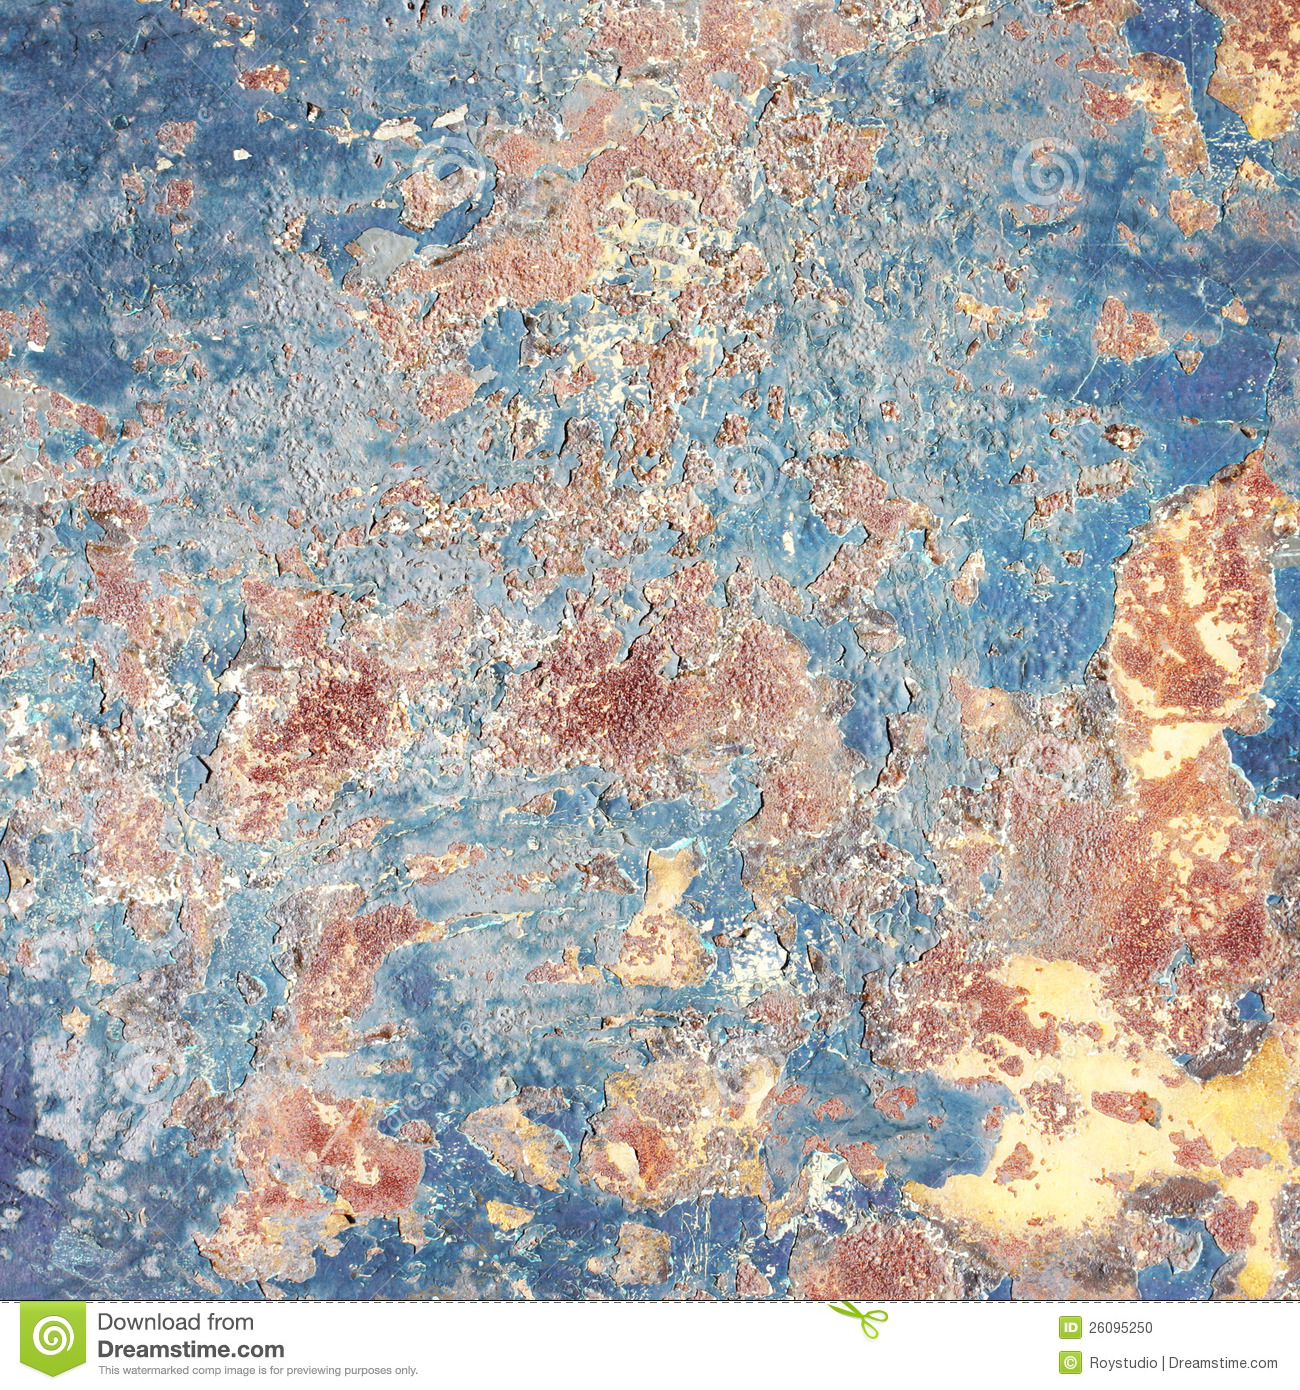 Grunge background, old metal background painted wall texture